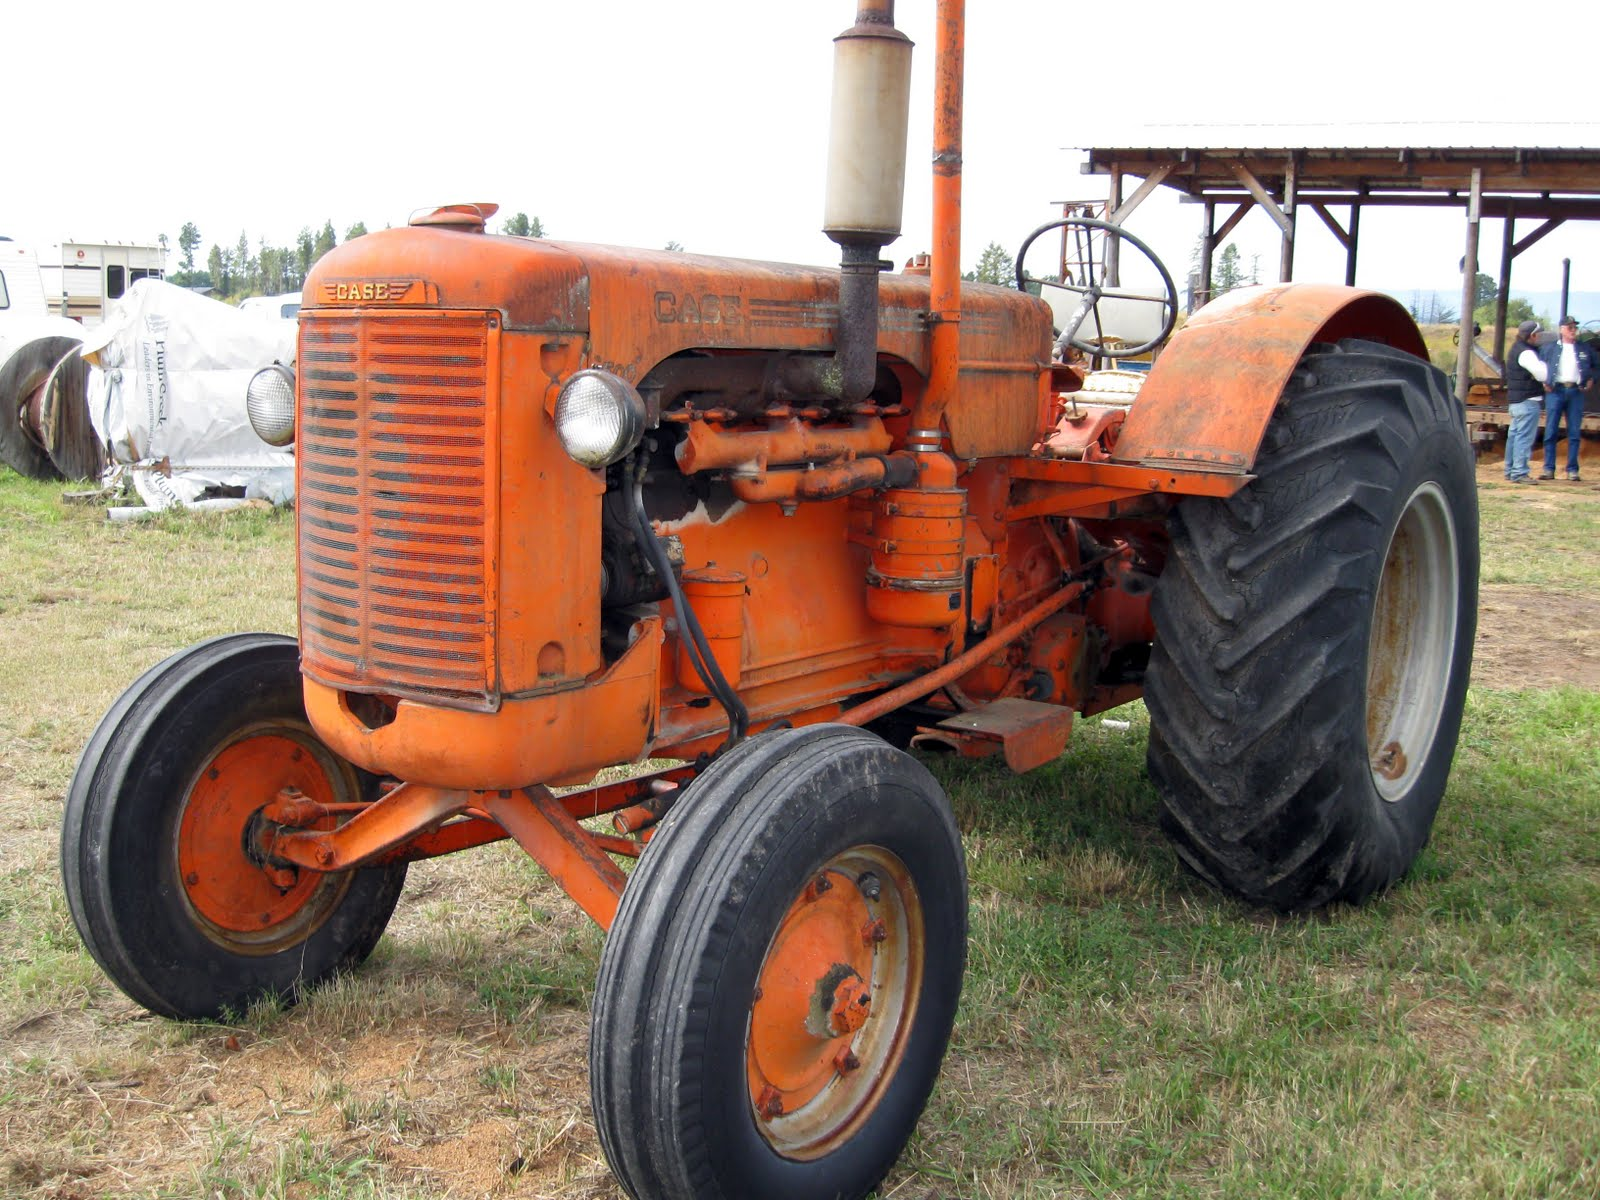 Old Case Tractor : Old case tractor bing images